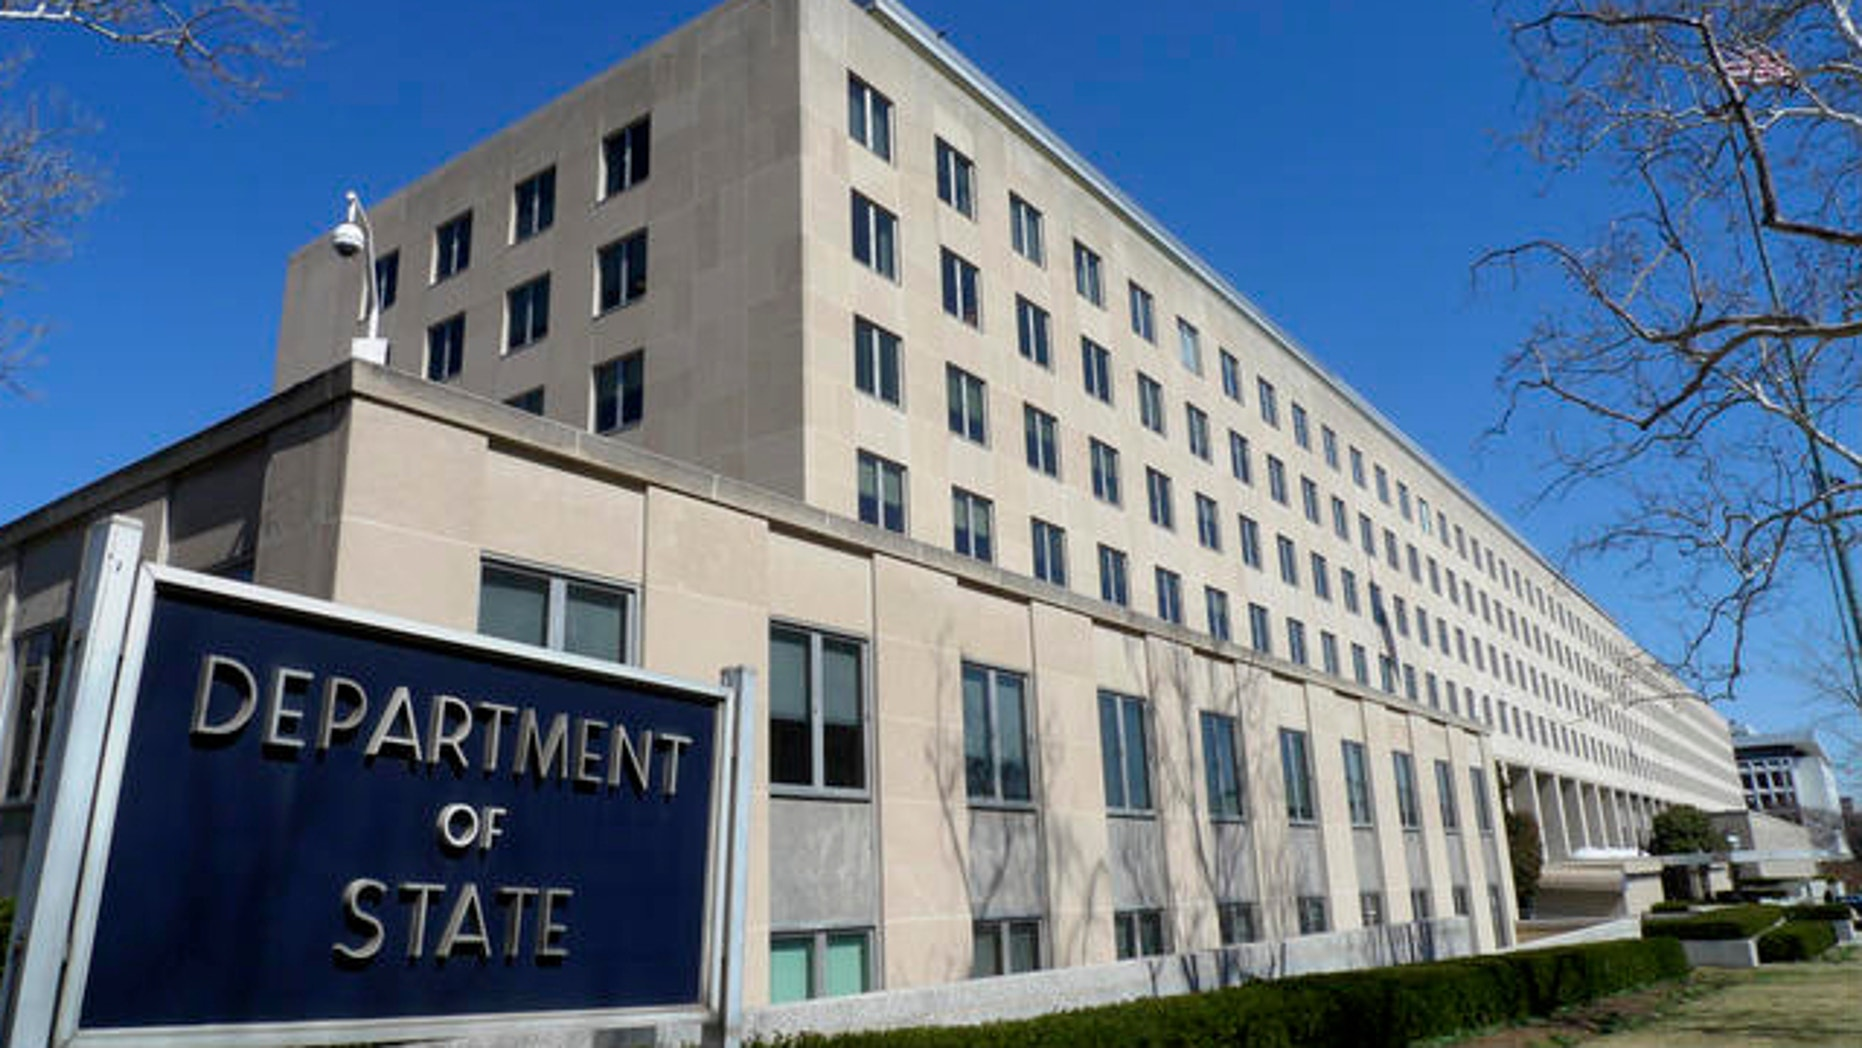 March 9, 2009: This photo shows State Department headquarters in Washington, D.C.